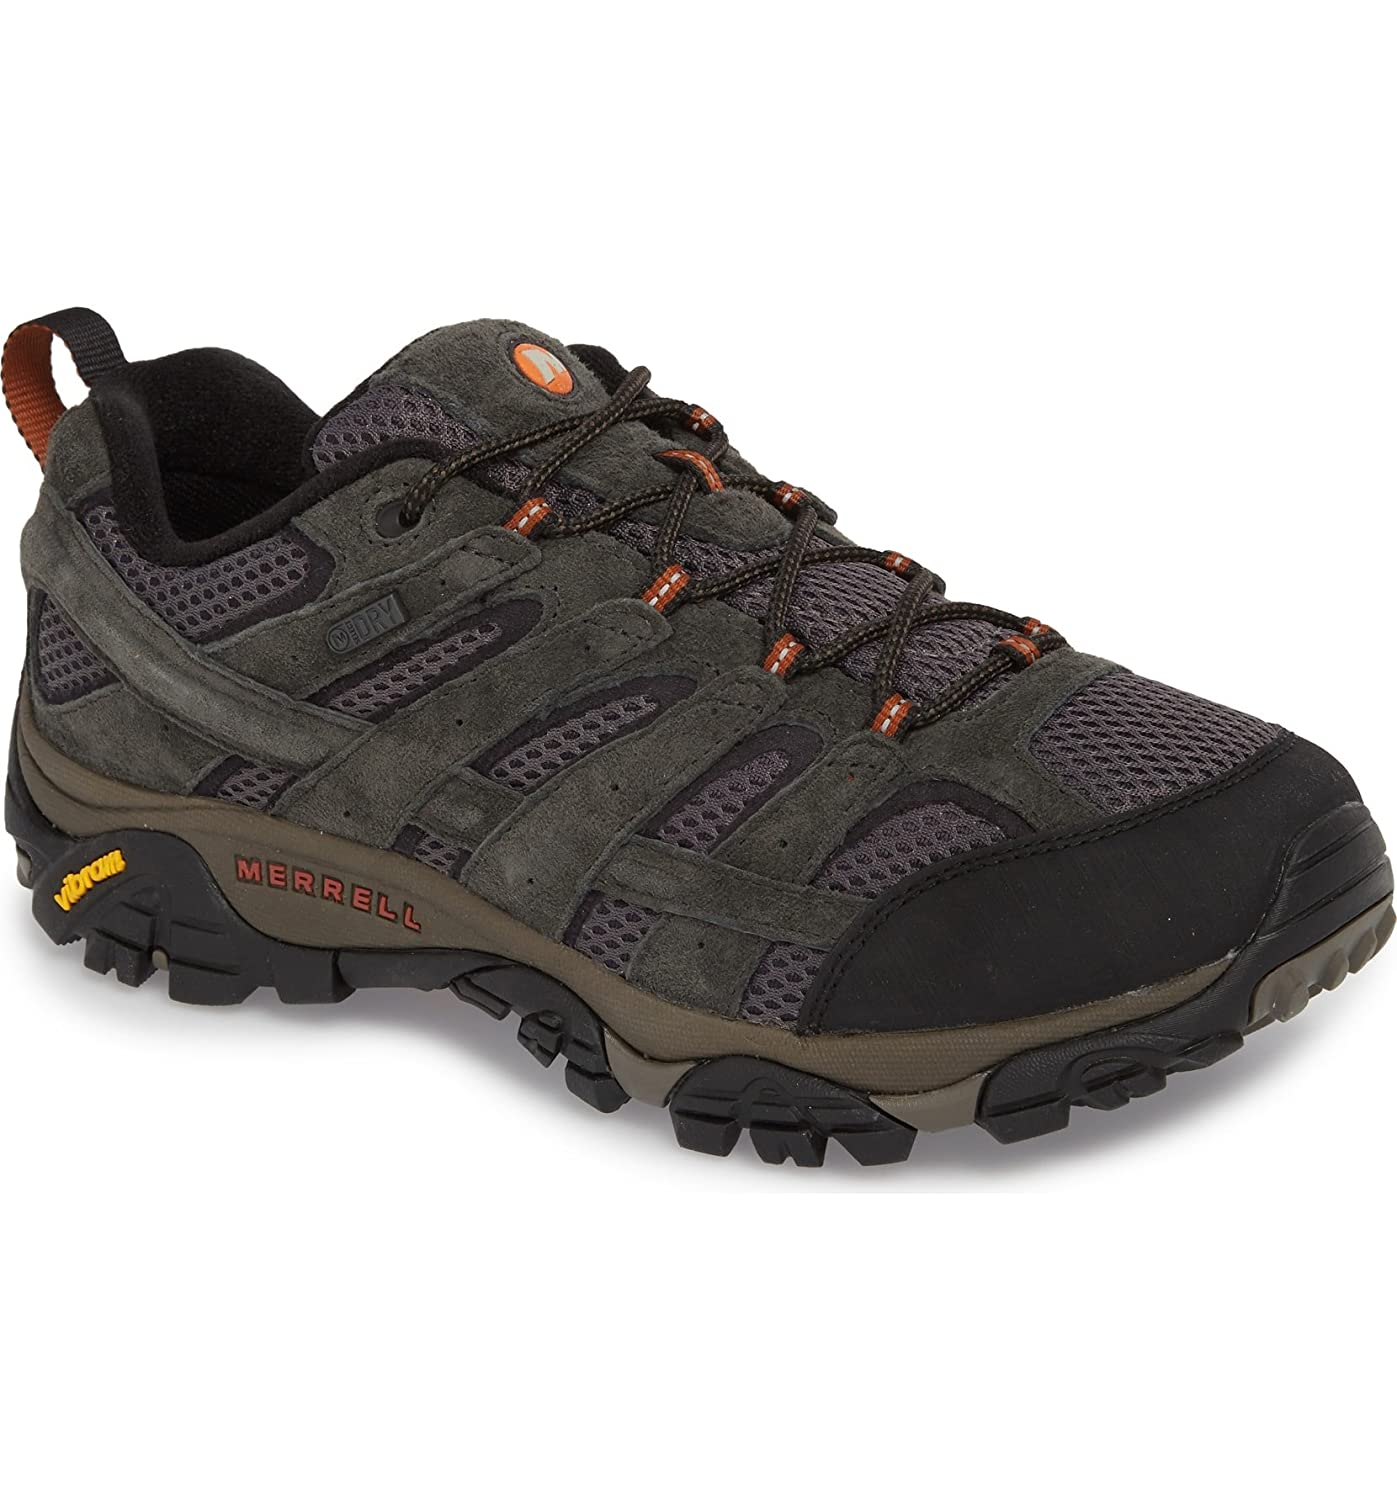 [メレル] メンズ スニーカー Merrell Moab 2 Waterproof HIking Shoe (M [並行輸入品] B07F3YFRB4